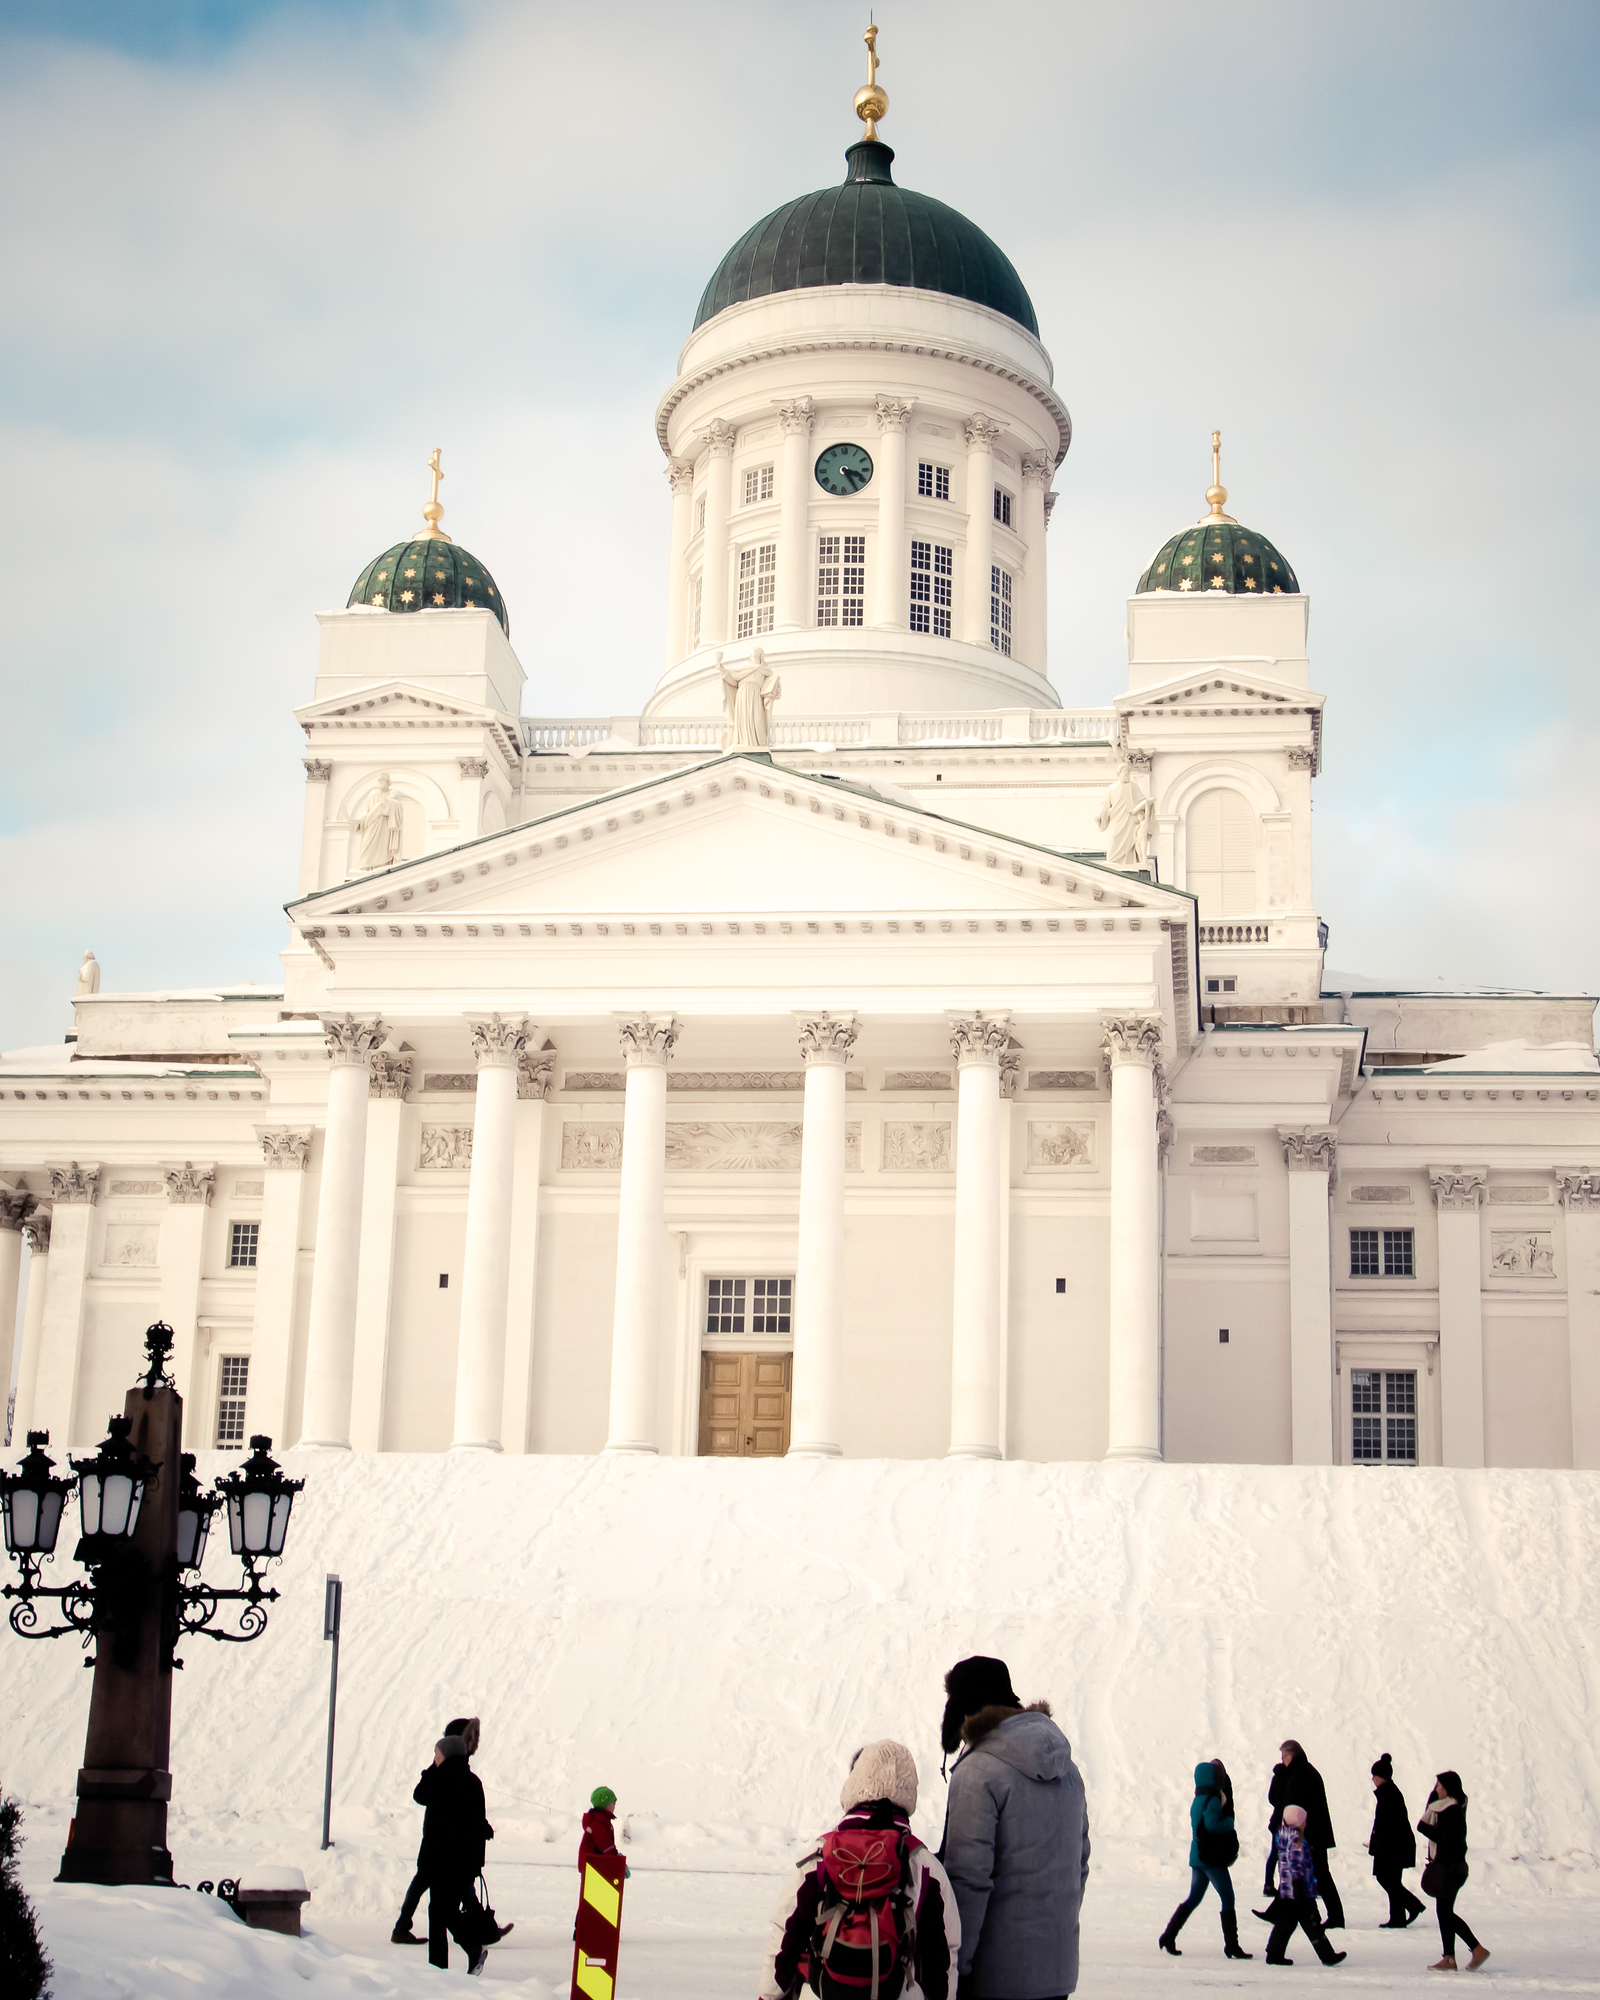 Looking at Architecture in Helsinki Finland